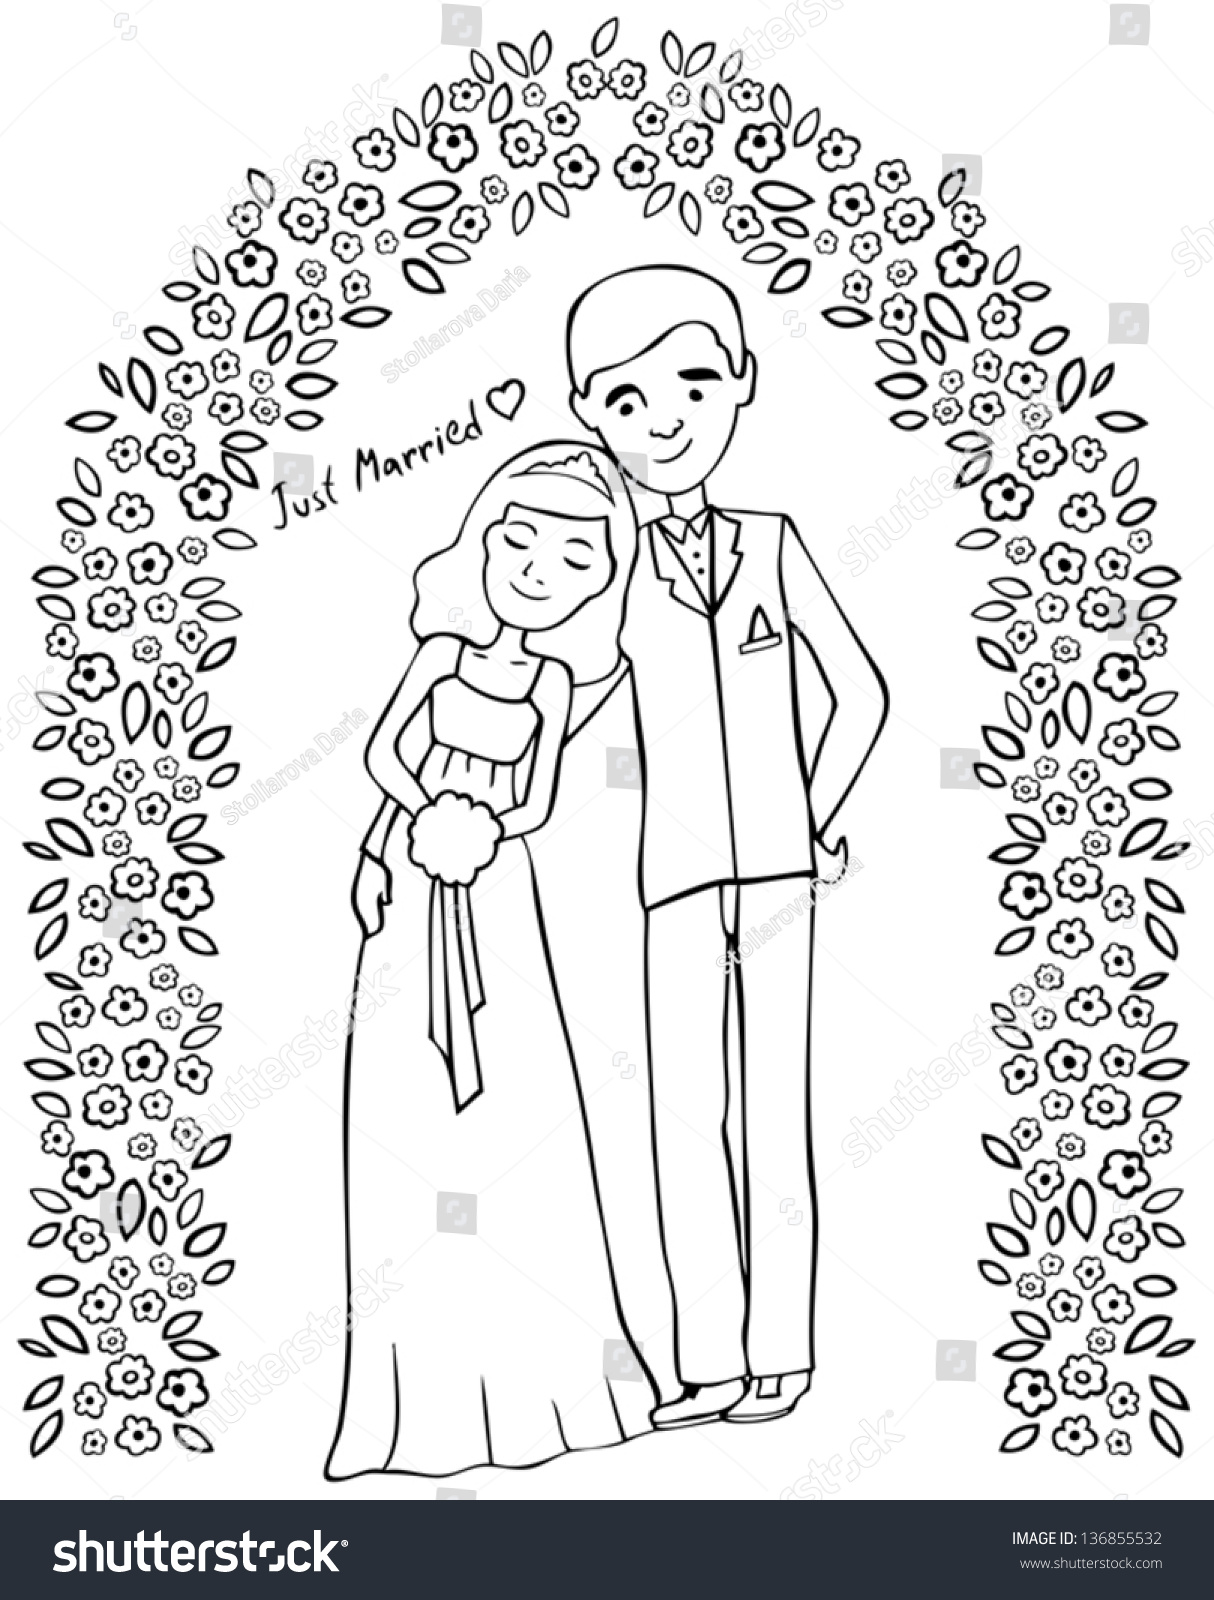 Happy married couple sketch